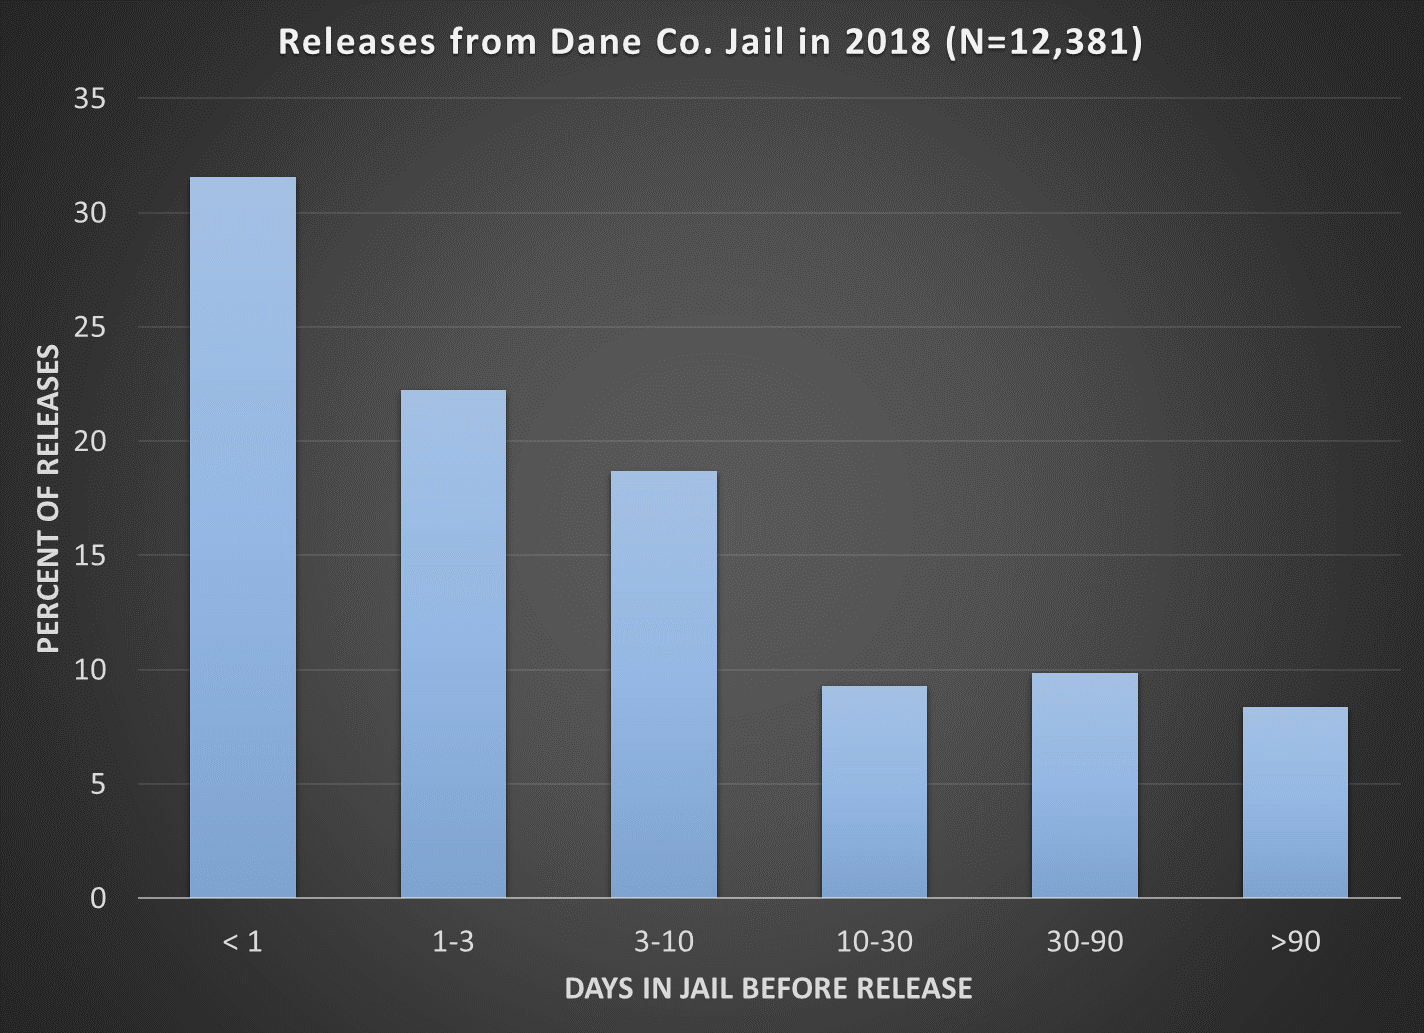 Bar graph length of stay for those released from Dane Co. Jail in 2018